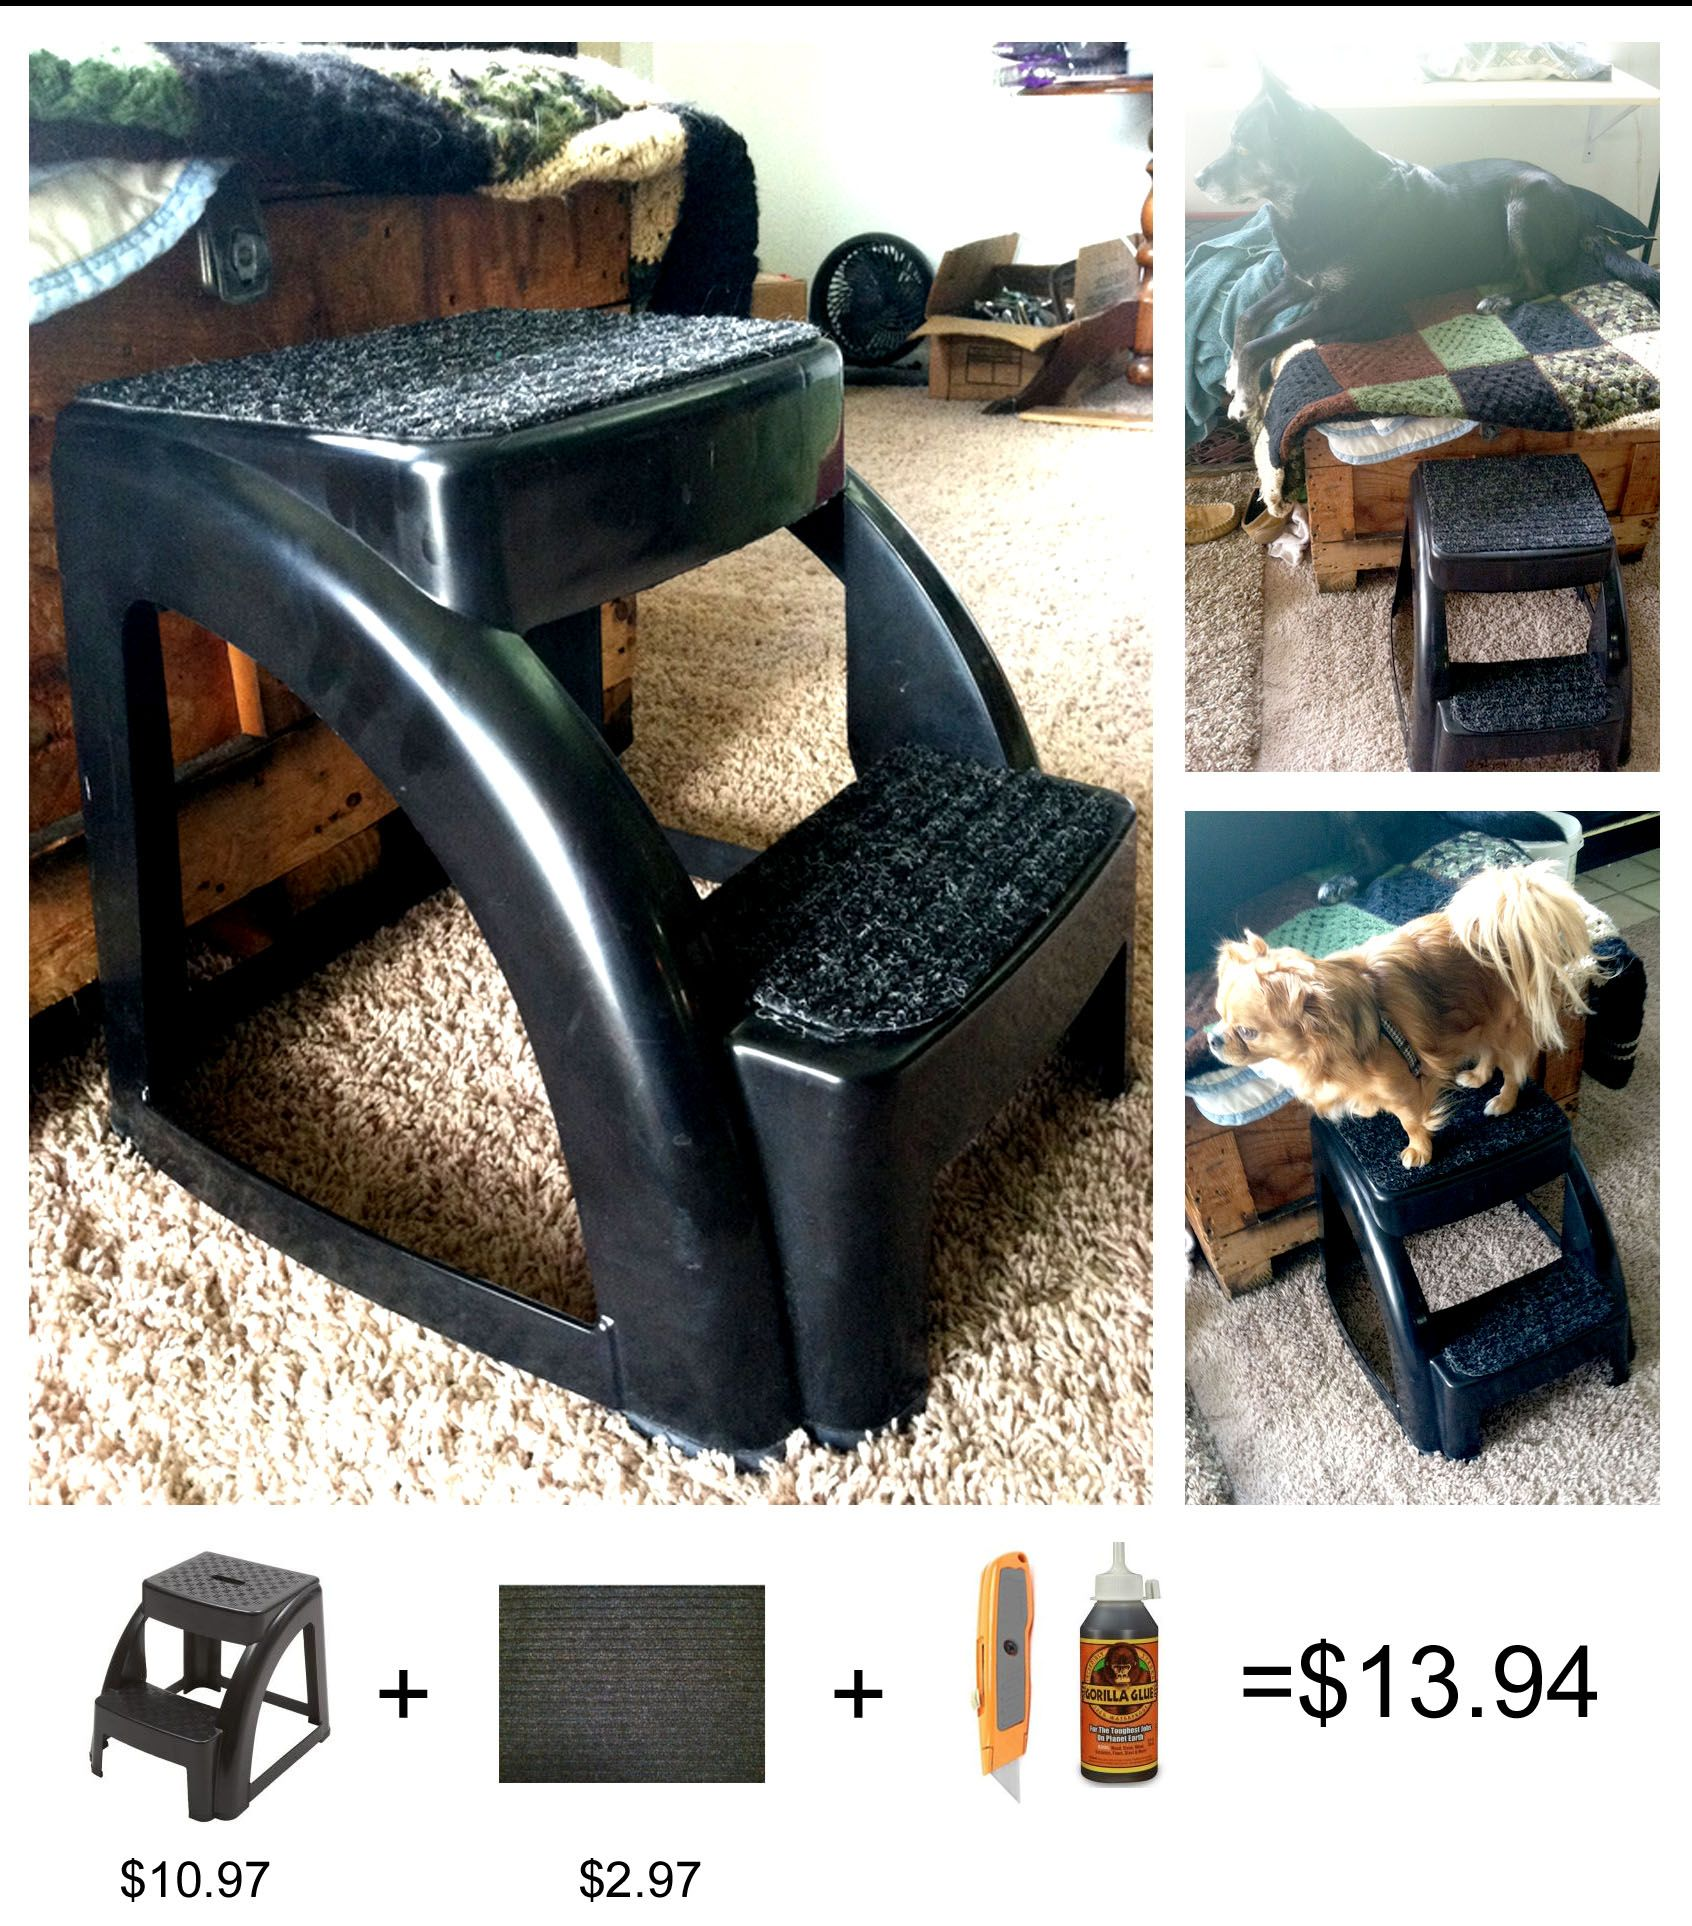 DIY Dog Pet Stairs Stool with support up to 300lbs. This